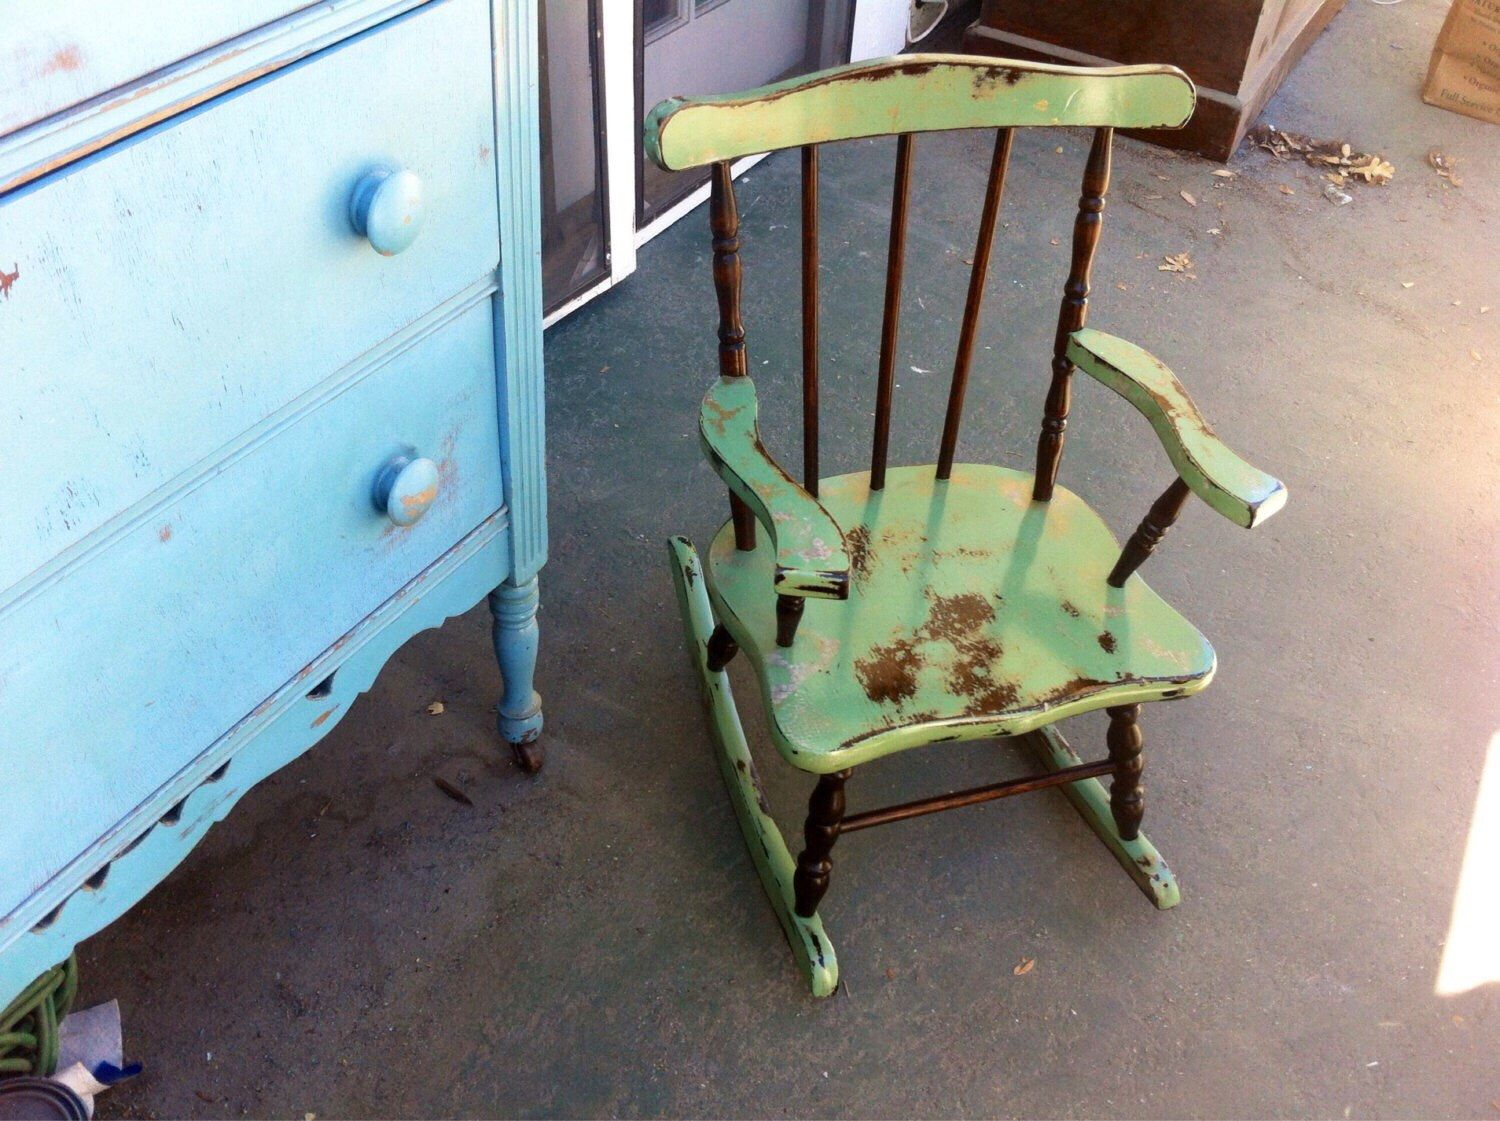 shabby chic childrens furniture. SOLD - Shabby Chic Child\u0027s Rocking Chair, French Country Home Decor, Chippy Paint Green, Gold Undertones \u0026 Stained Wood Kids Chair By Childrens Furniture